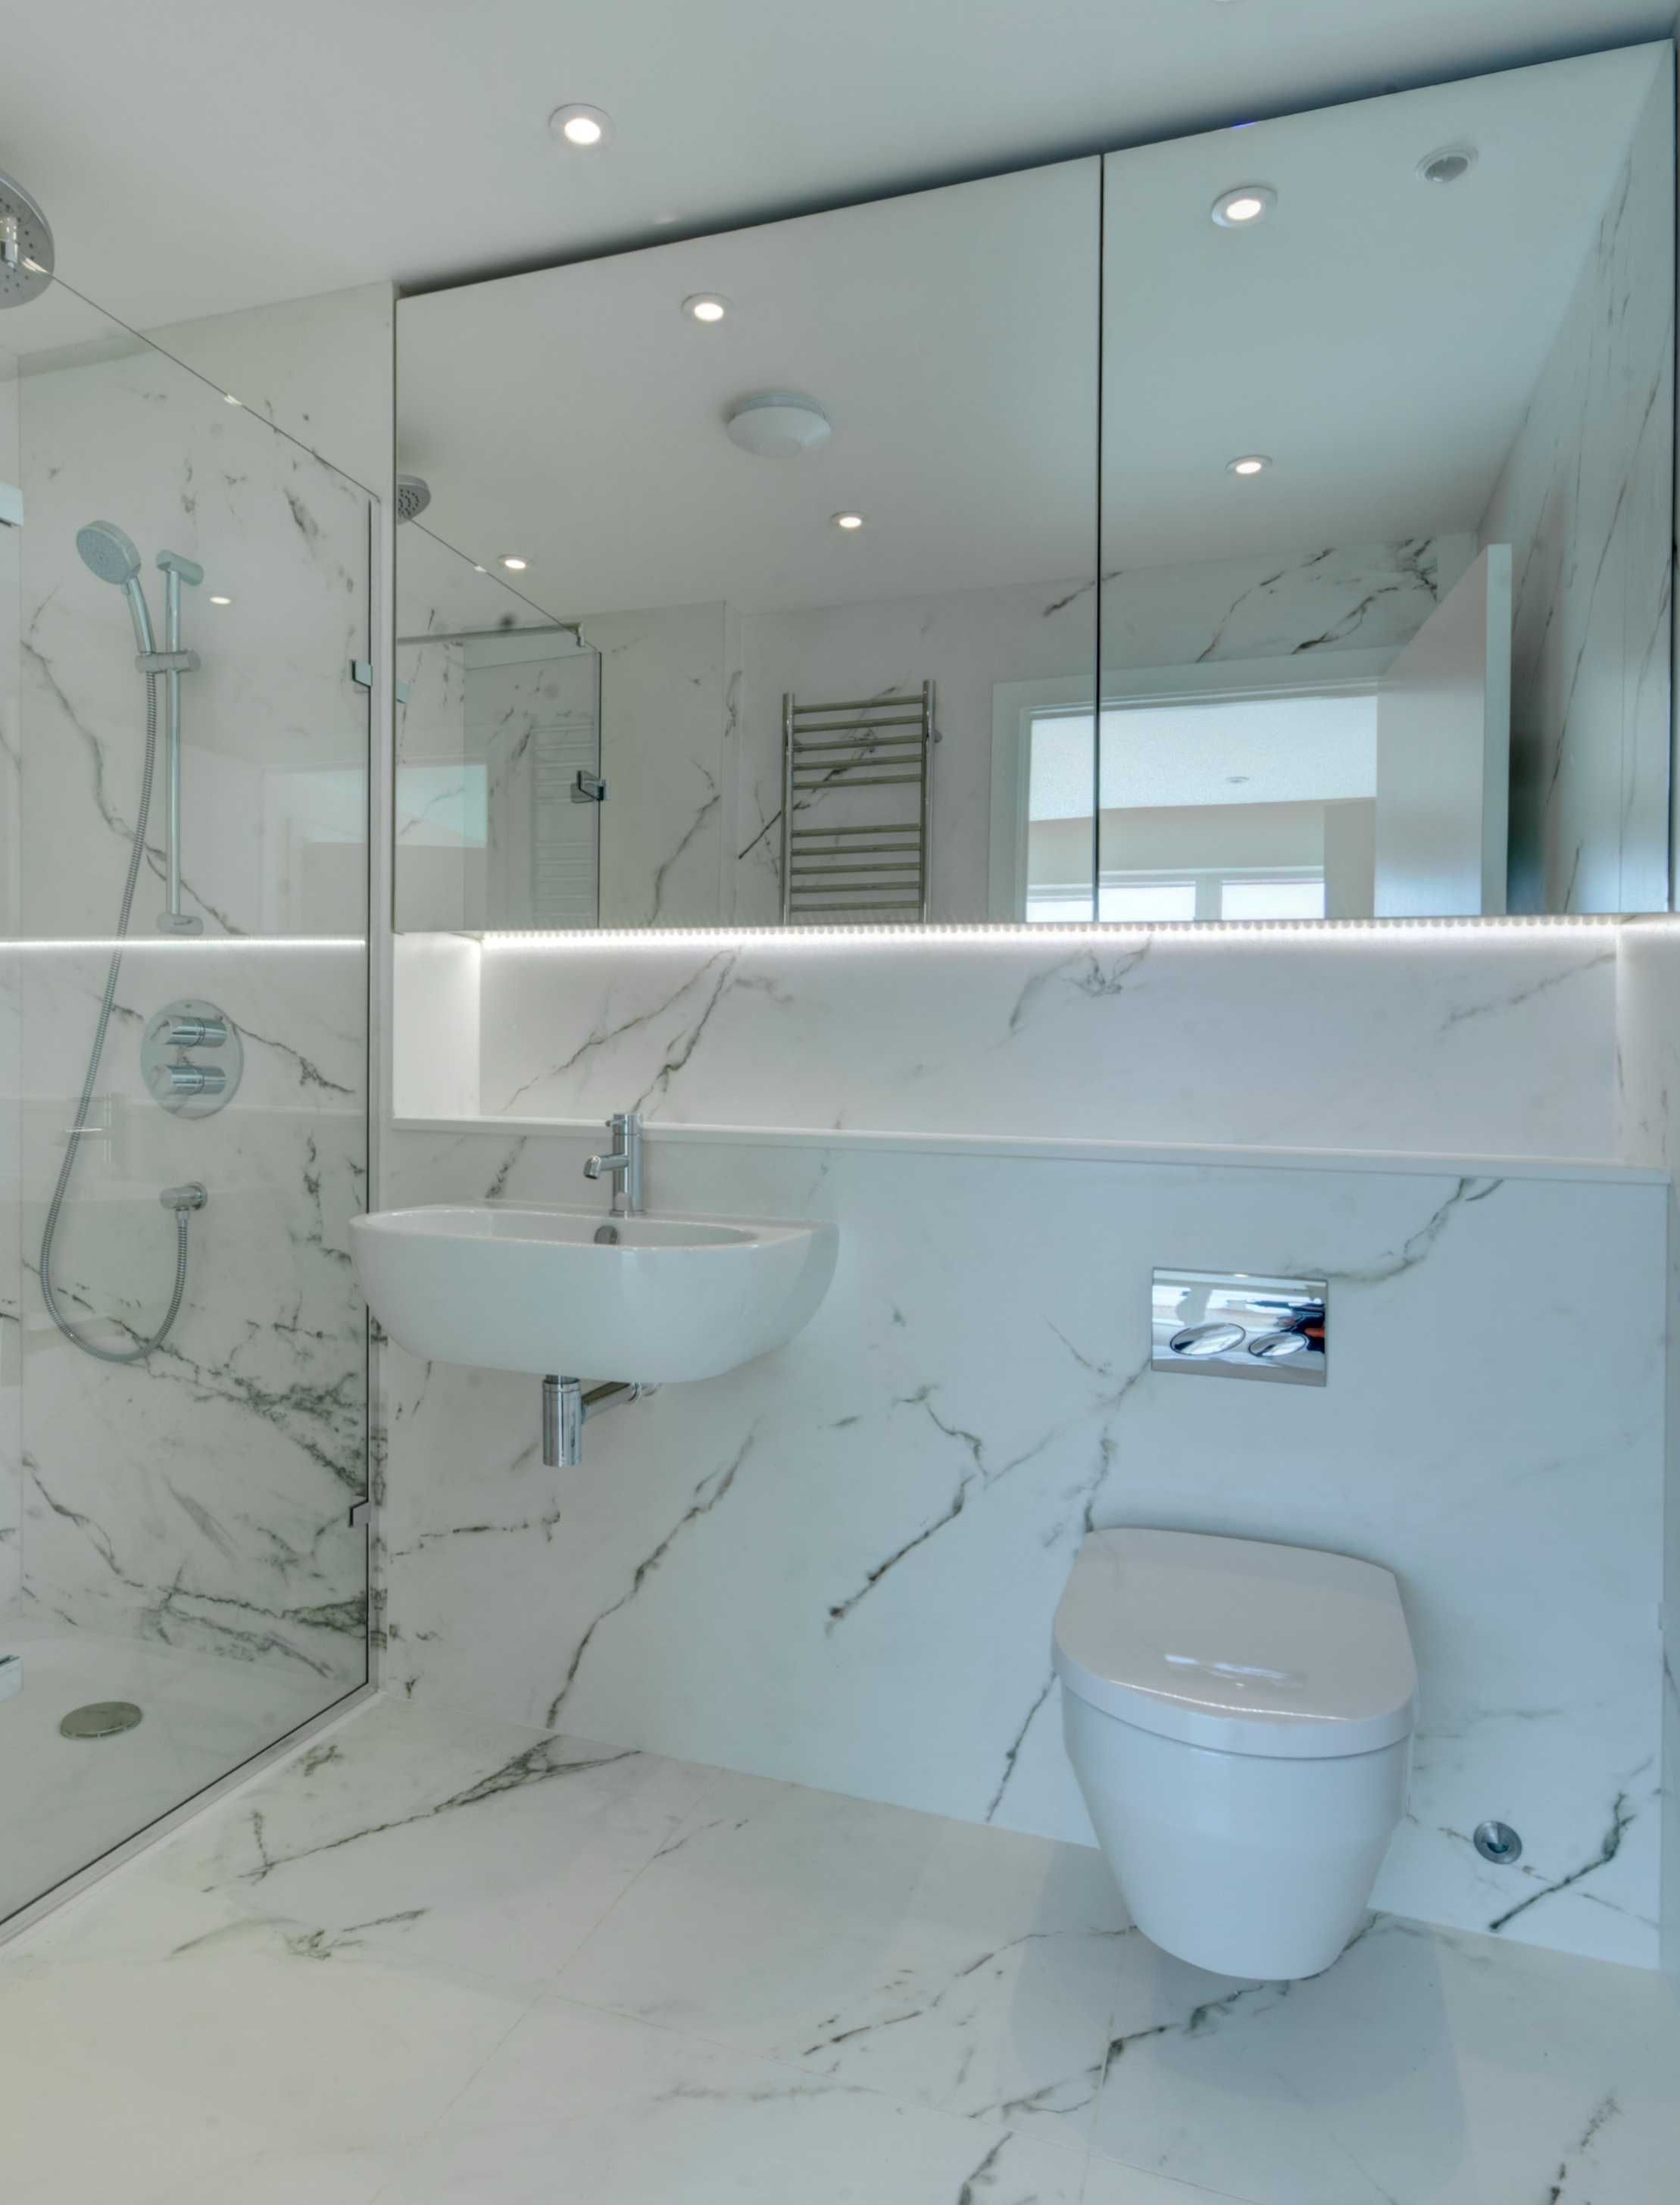 Bathroom design with marble effect wall finish and bespoke mirror cabinet.